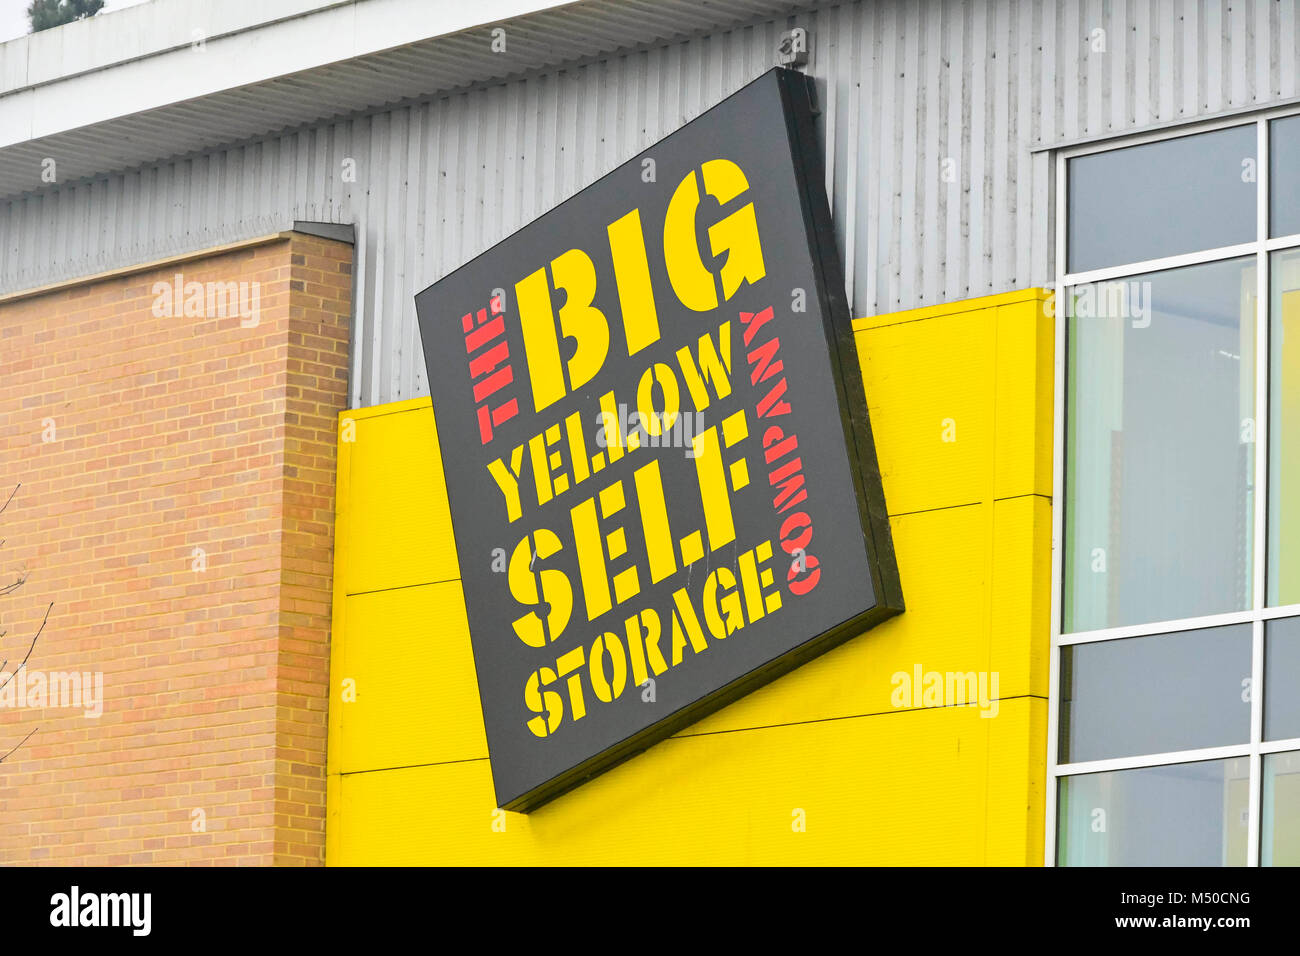 big yellow storage uk stock photos big yellow storage uk stock images alamy. Black Bedroom Furniture Sets. Home Design Ideas